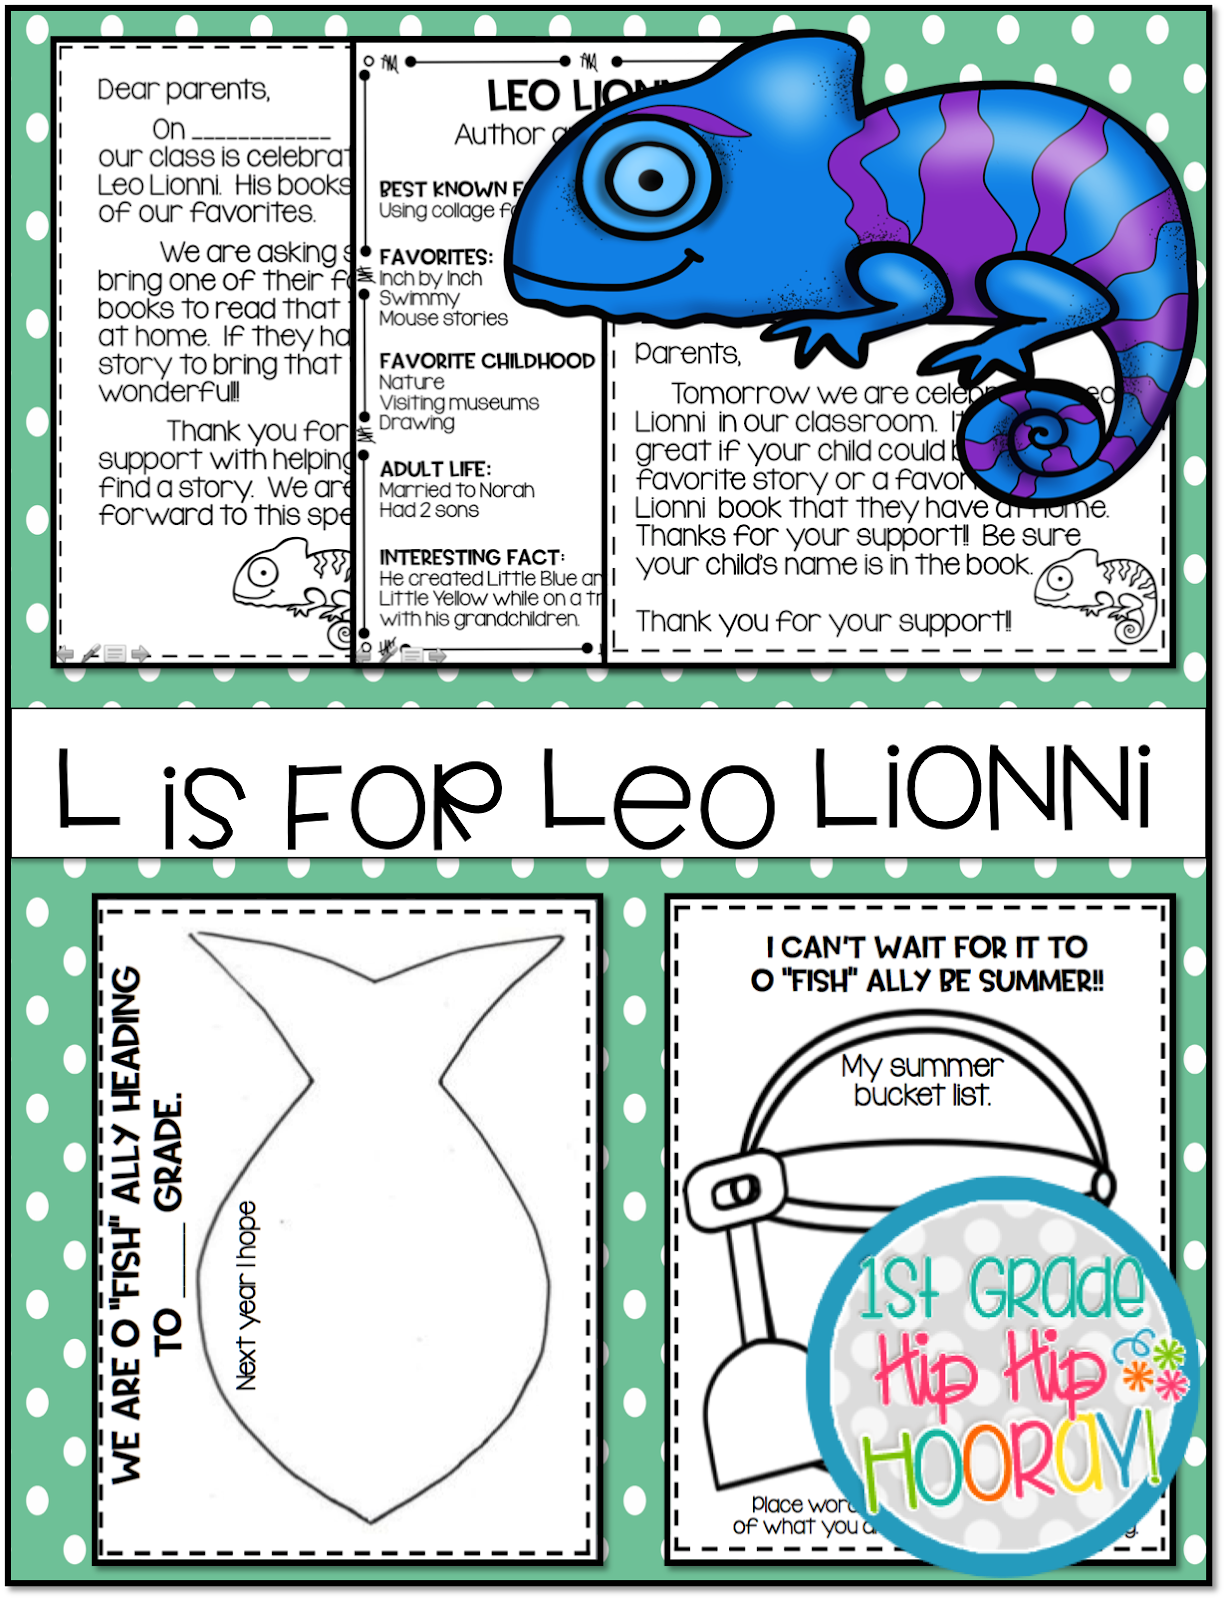 1st Grade Hip Hip Hooray L Is For Lionni Abc Summer